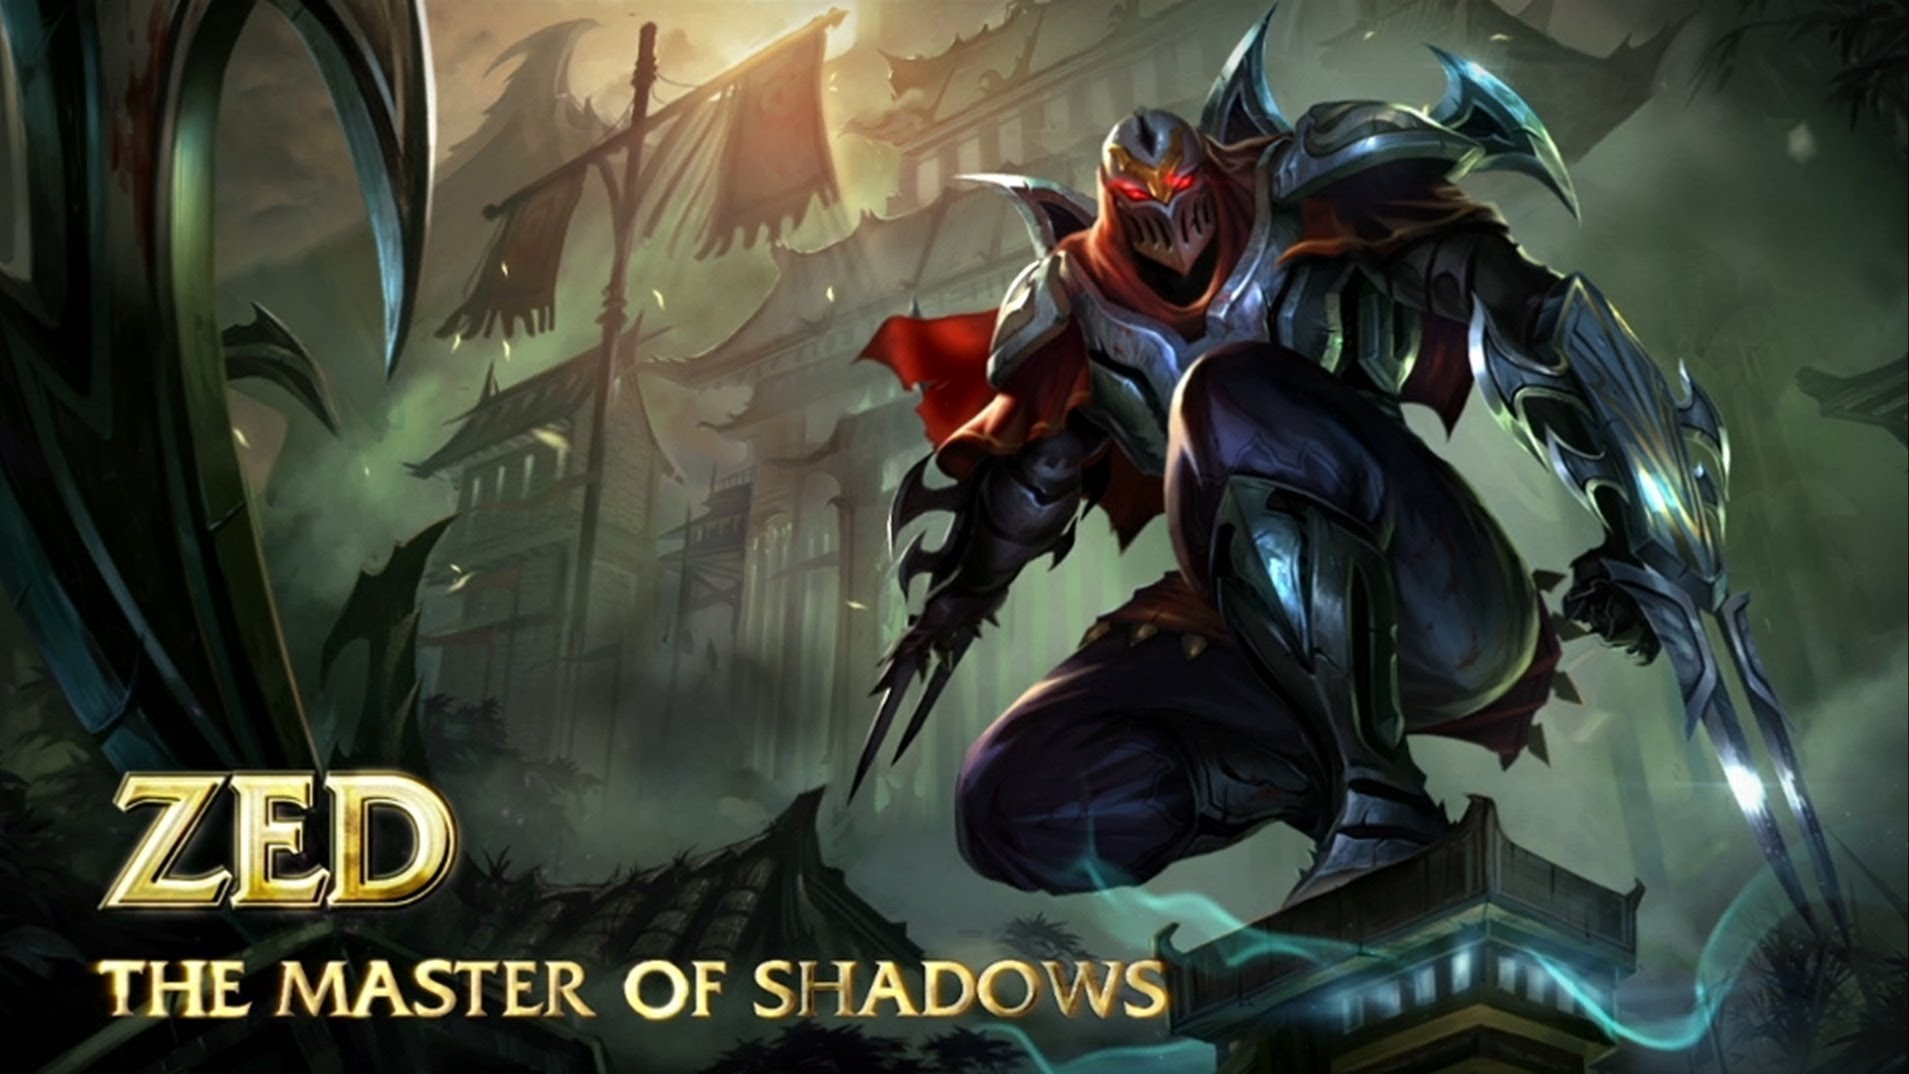 Best plays Zed Montage - the Master of Shadows - League of Legends Channel  -LOL - YouTube - Zed The Master Of Shadows PNG